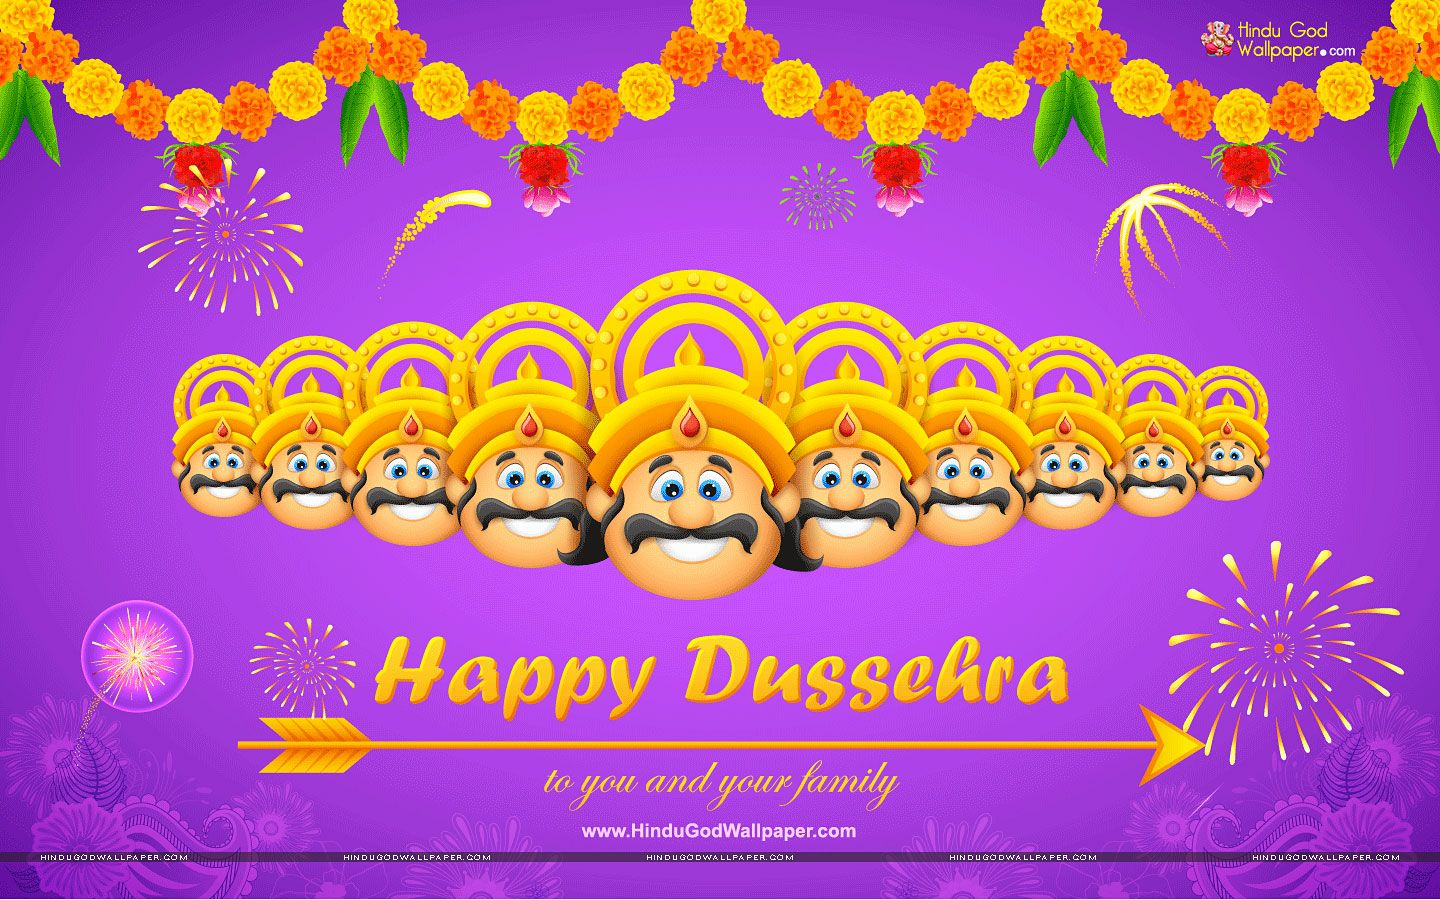 Happy Dussehra Wallpapers Photos Free Download Dussehra